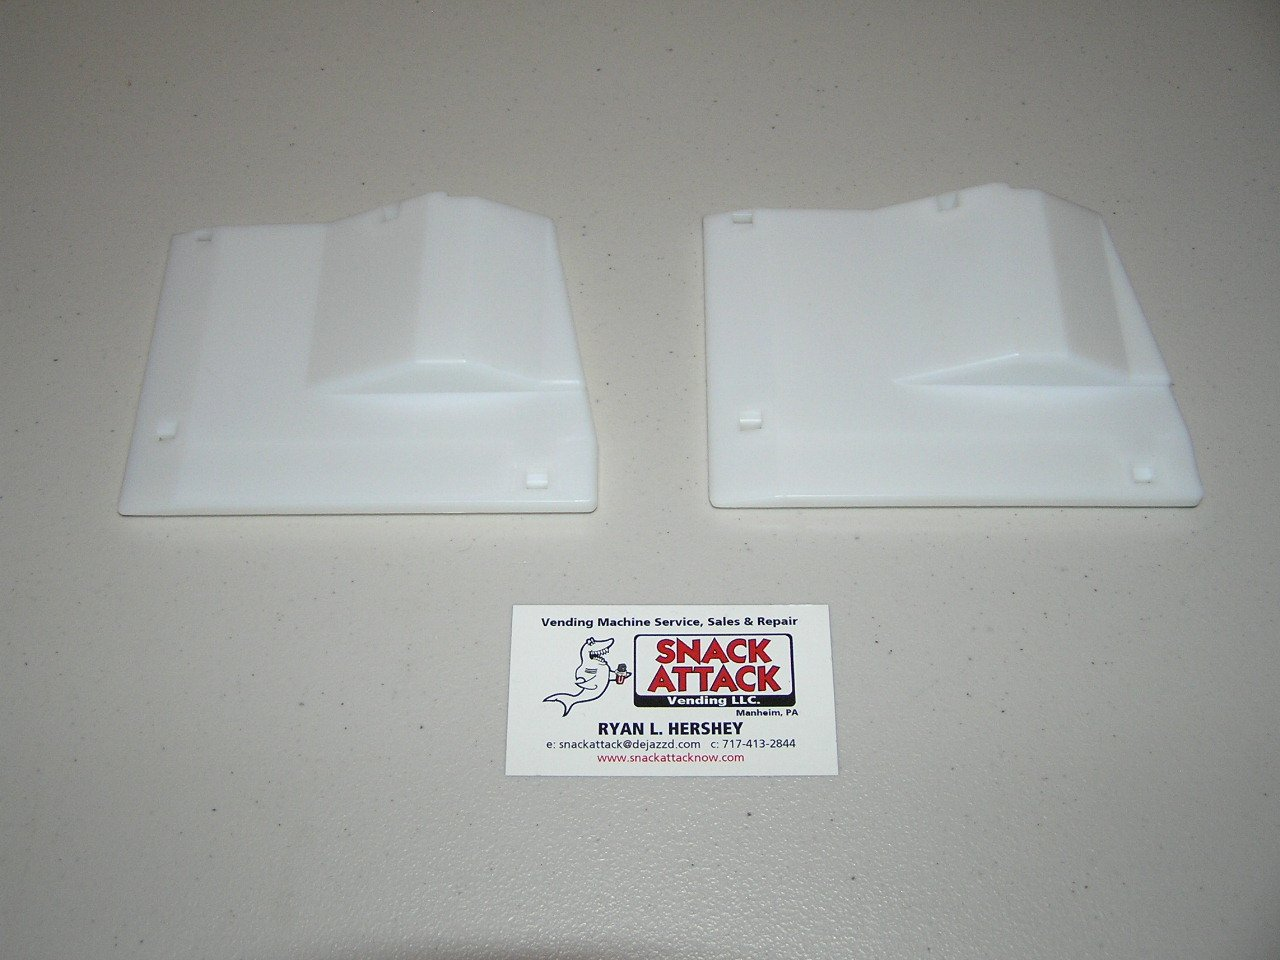 Dixie Narco 2145 & 5591 BEV Max Vending Machine (2) 8oz RED Bull Shims/!